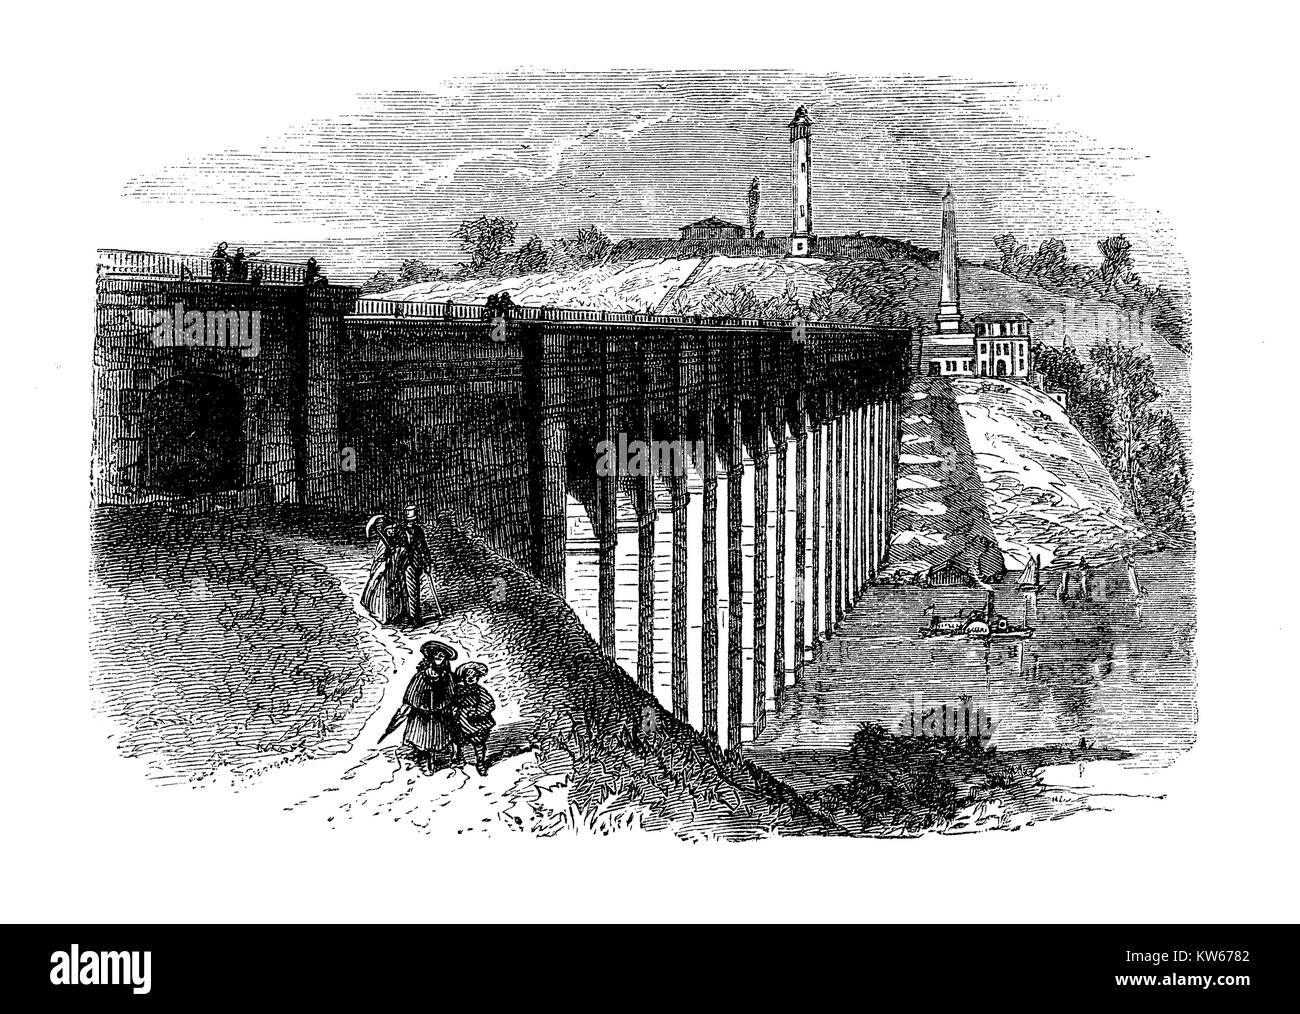 Vintage engraving of High Bridge,originally a stone arch bridge built in 1848 as part of Croton Aqueduct, the oldest - Stock Image